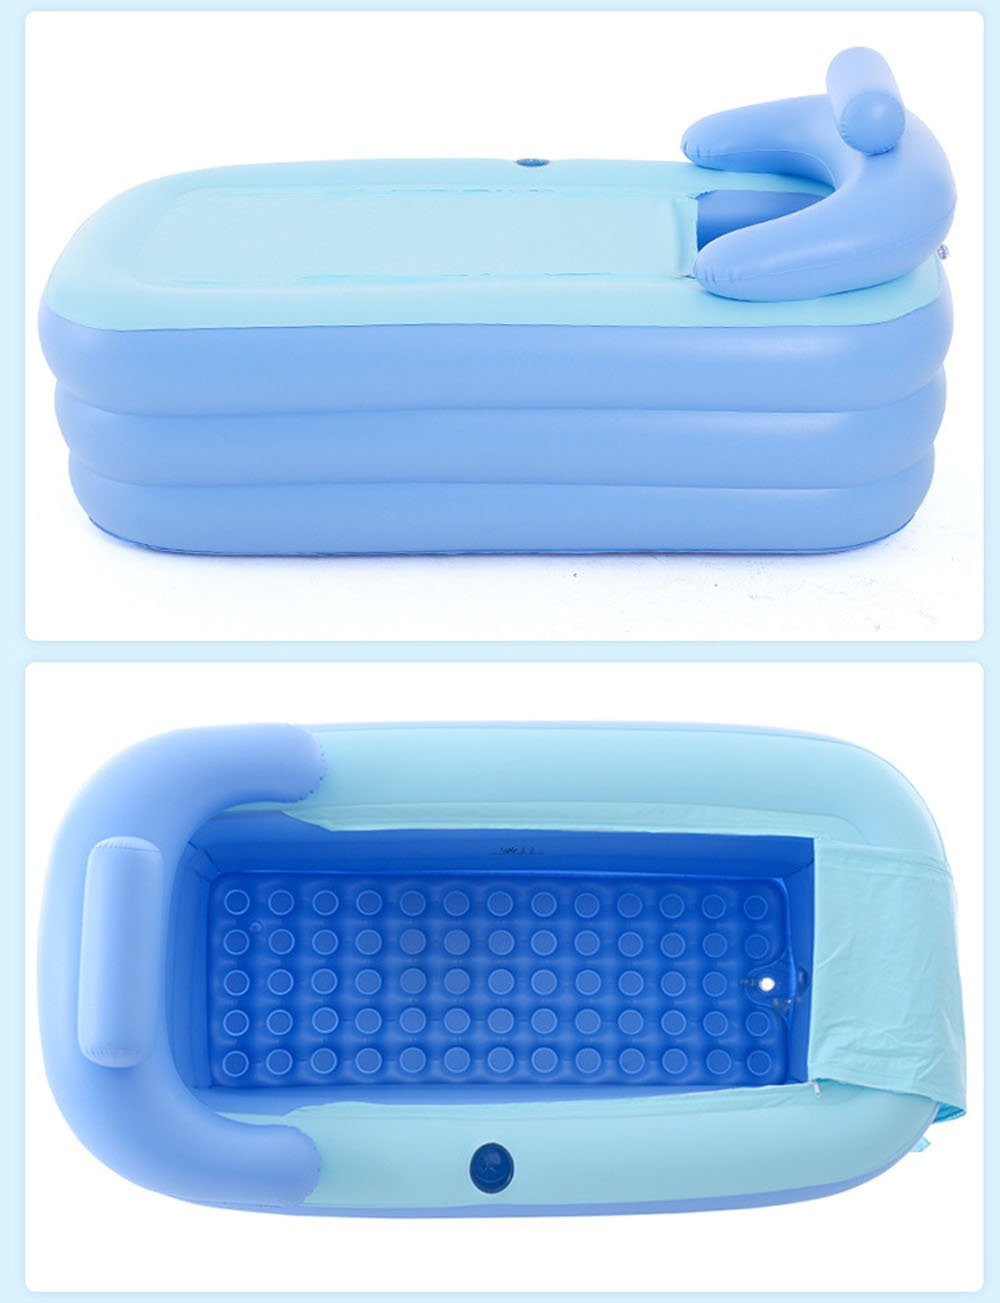 KiHomy SPA Inflatable Bath Tub, Adult Plastic Portable Adult Bathtub      Amazon.com